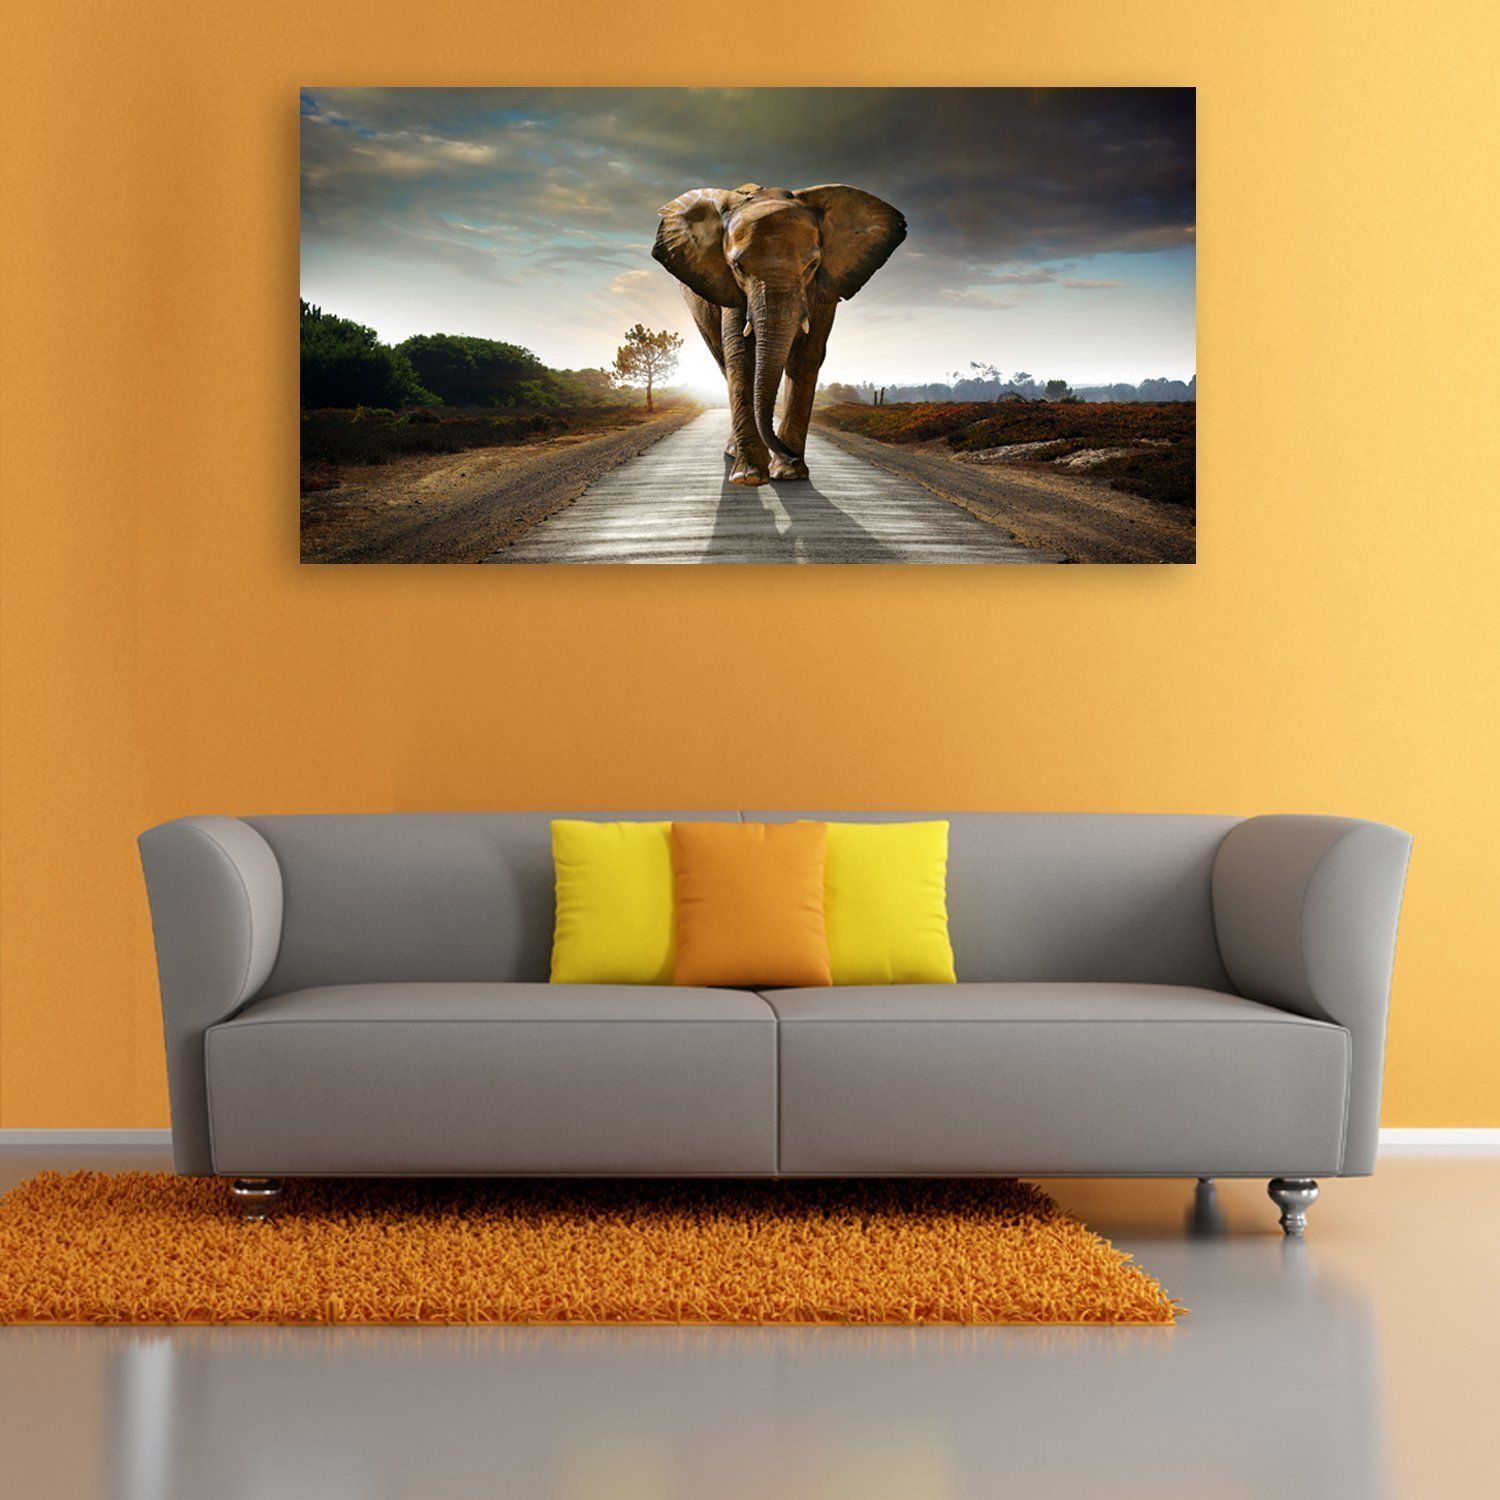 Elephant Animal Paintings Canvas Wall Art Print Paintings Drop shipping